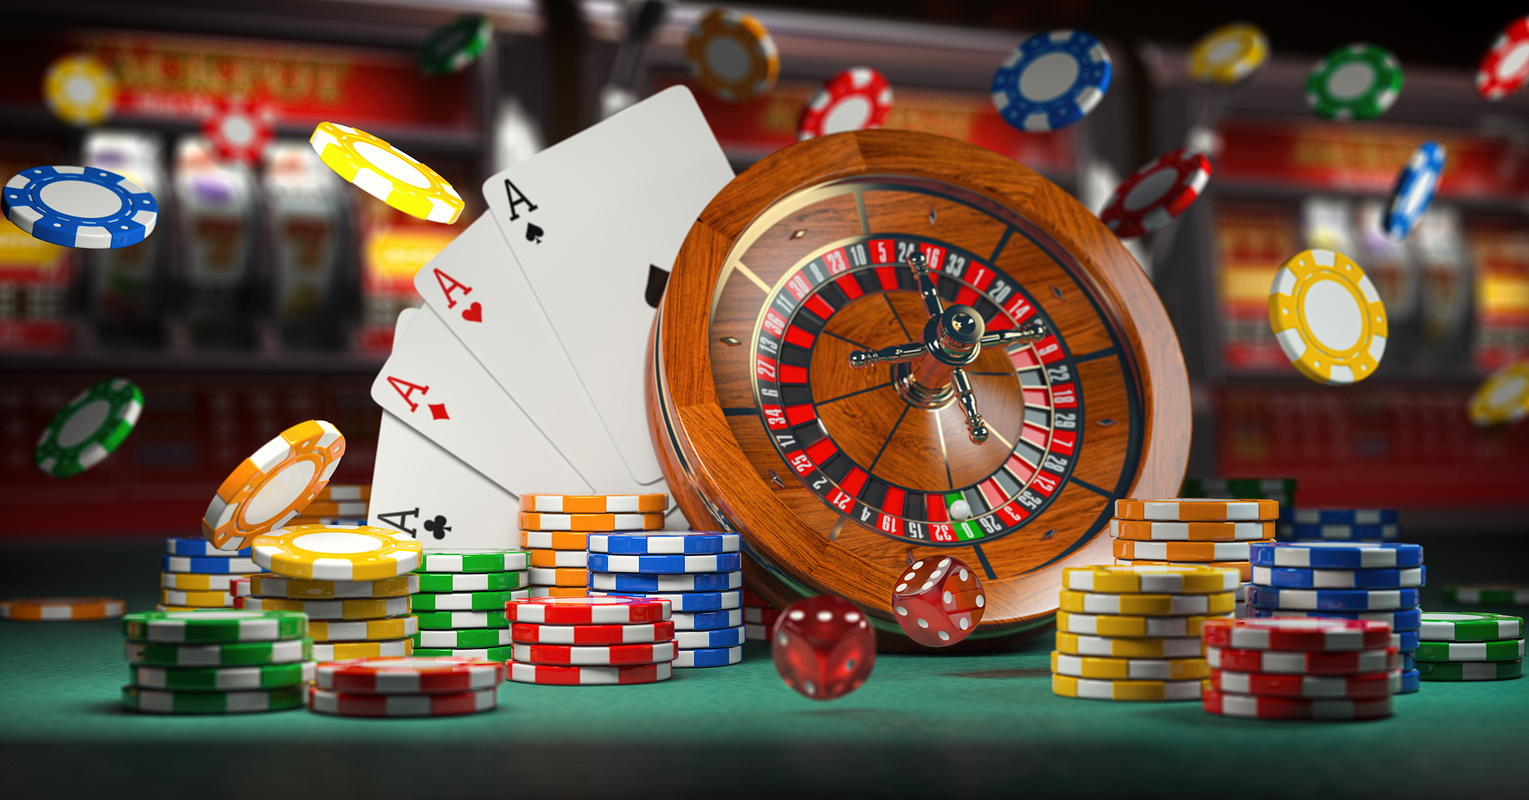 How to Play and Types of Sicbo Gambling Bets